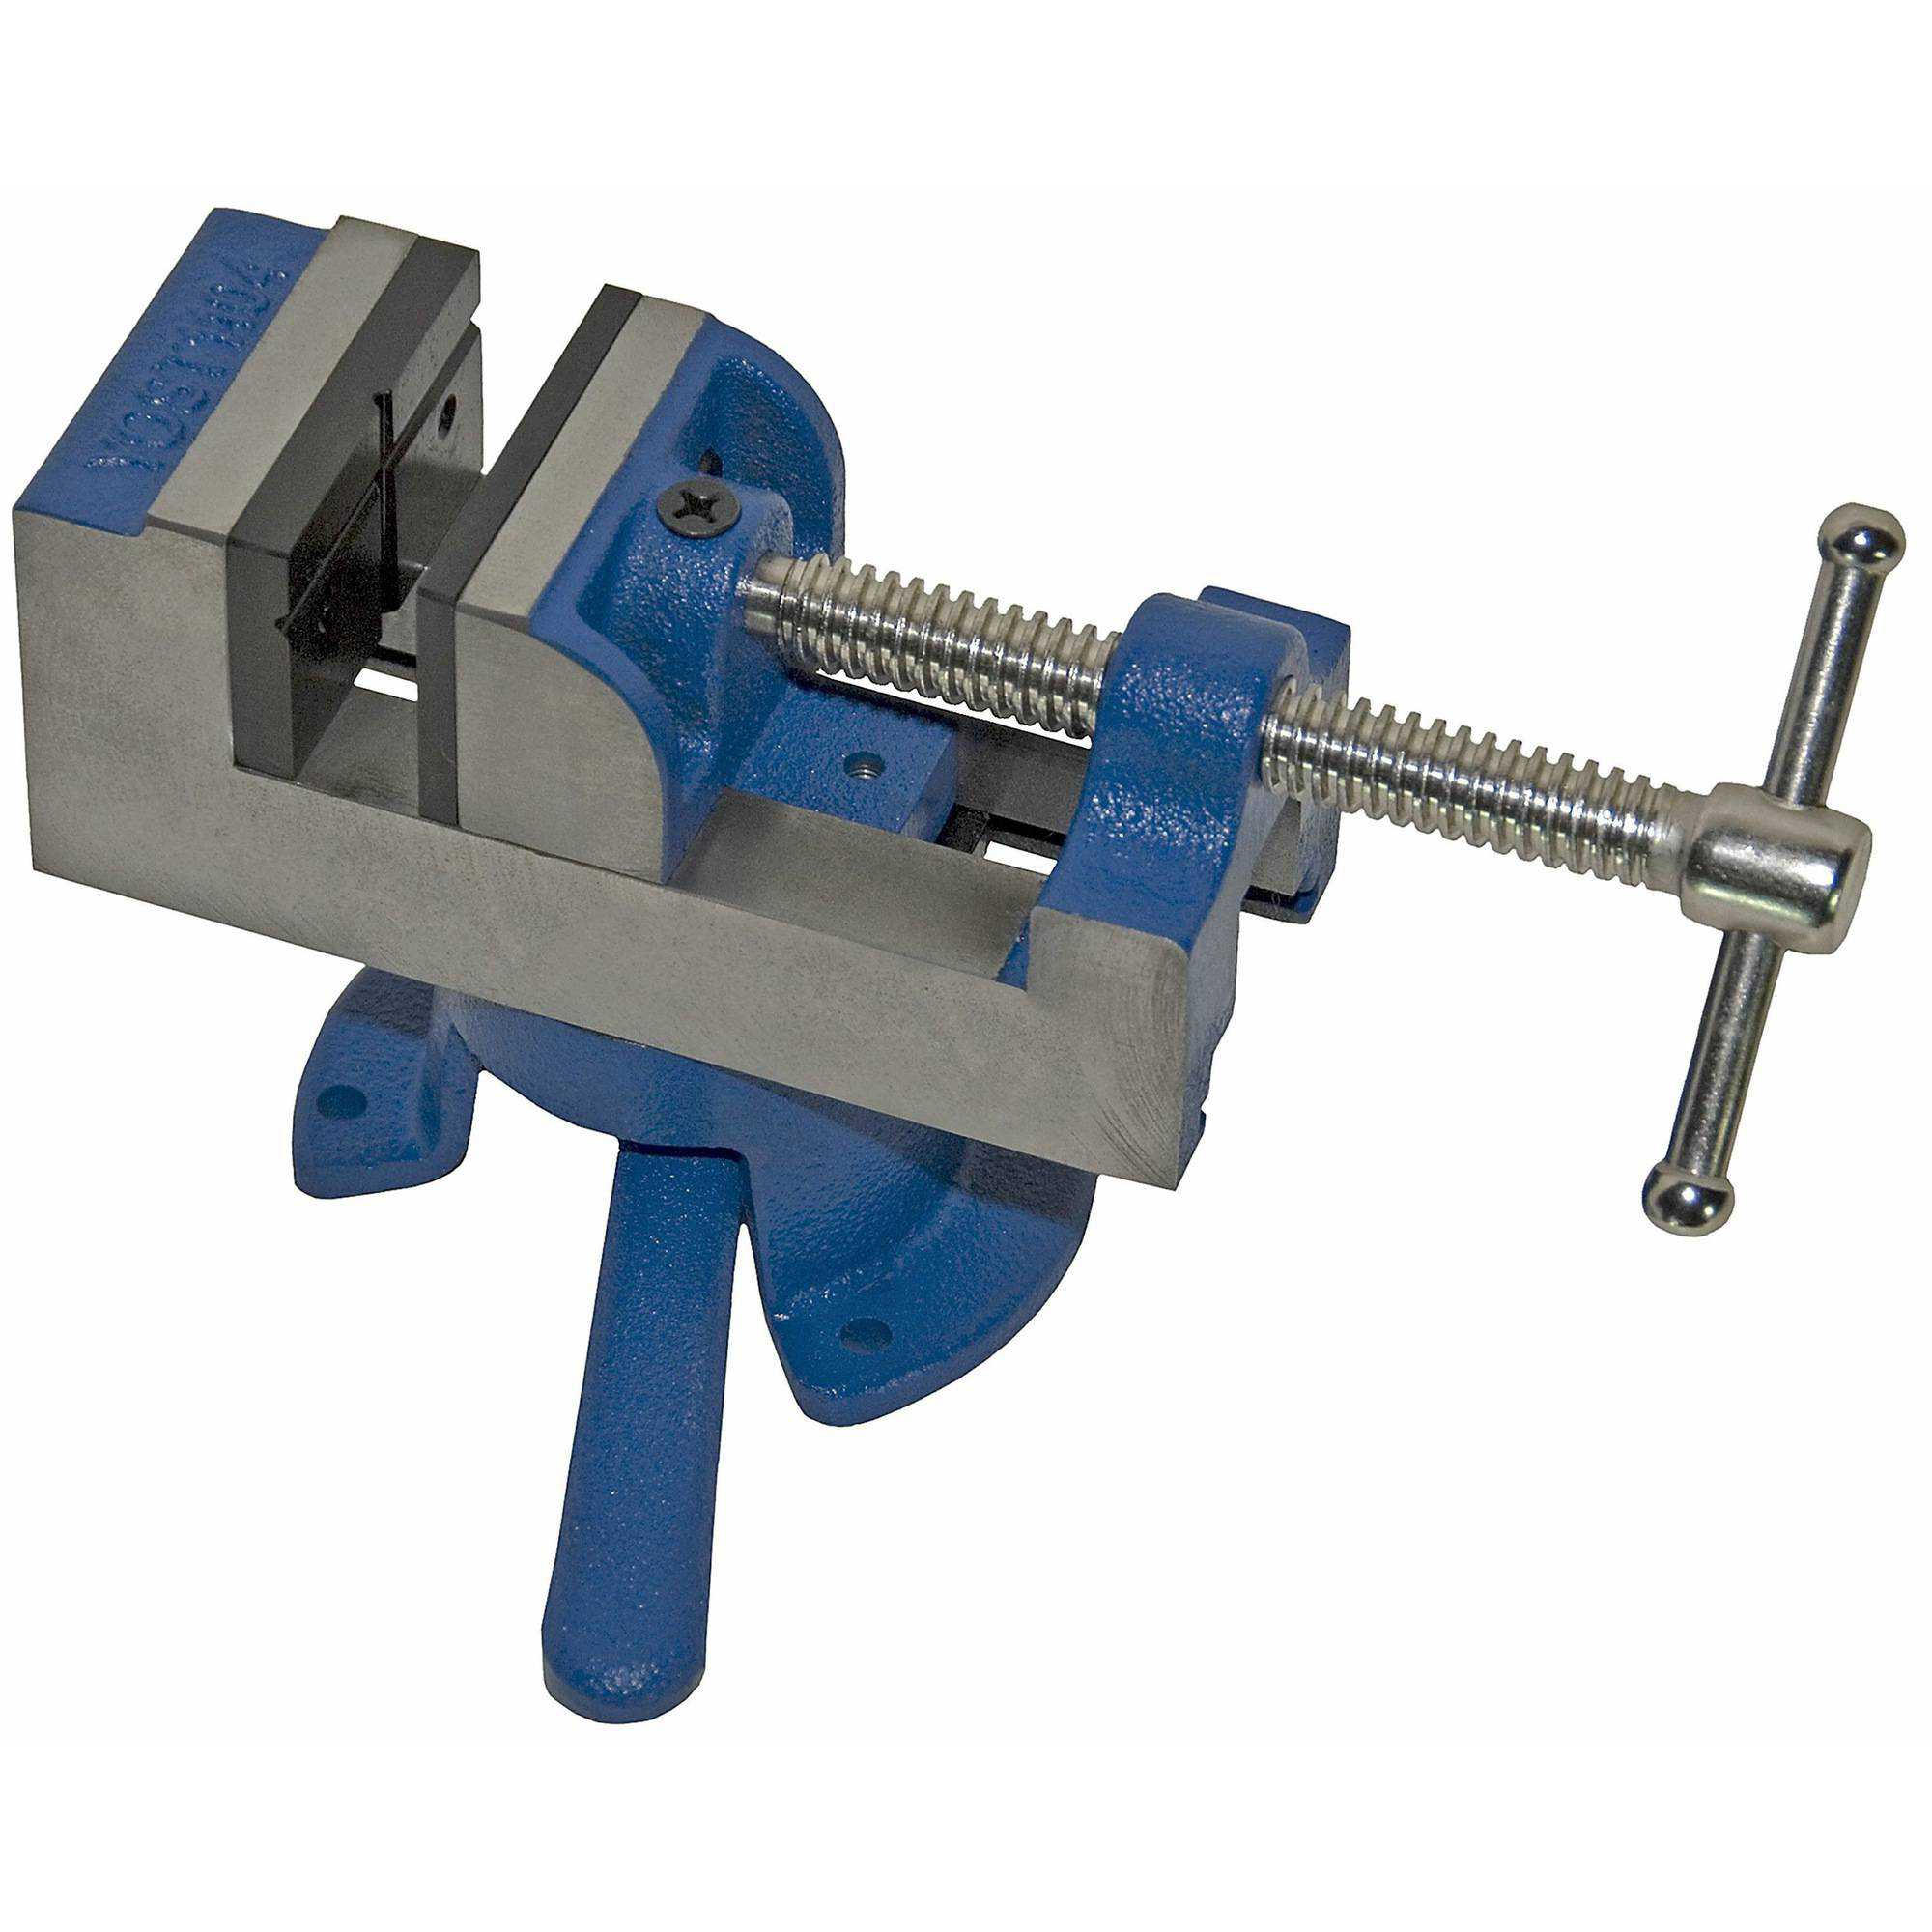 Yost 1104 Drill Press Vise